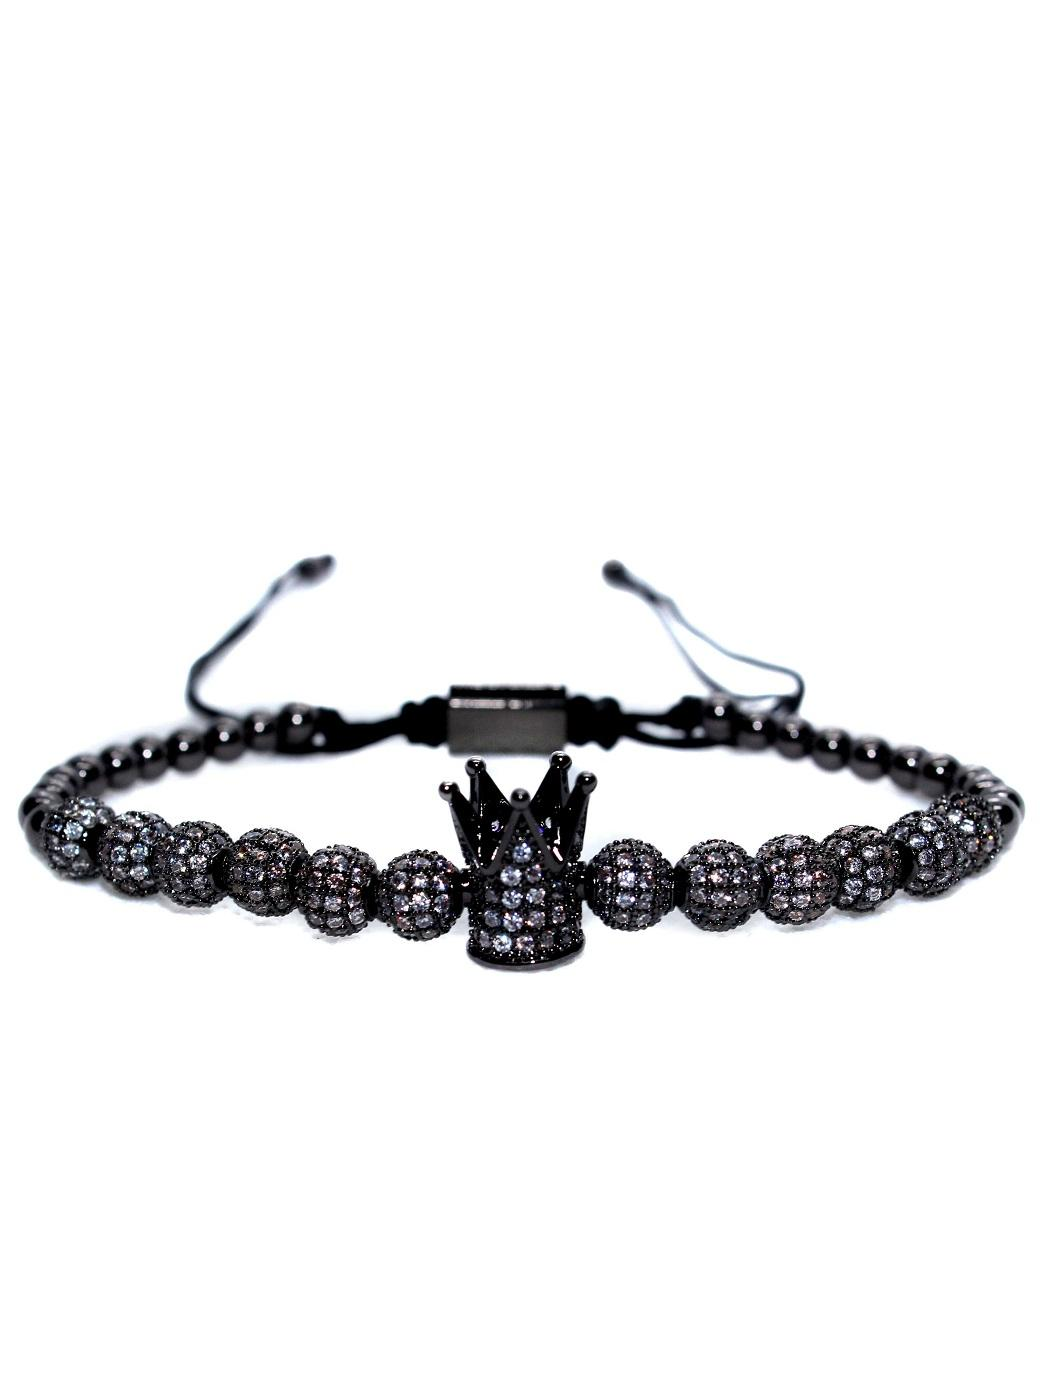 Imperial Crown Charm Bracelet, King And Queen Bead Bracelets, King And Queen Bracelets Near Me, King And Queen Crown Bracelet, King Bracelet, King Bracelet For Sale, His Queen Her King Bracelets